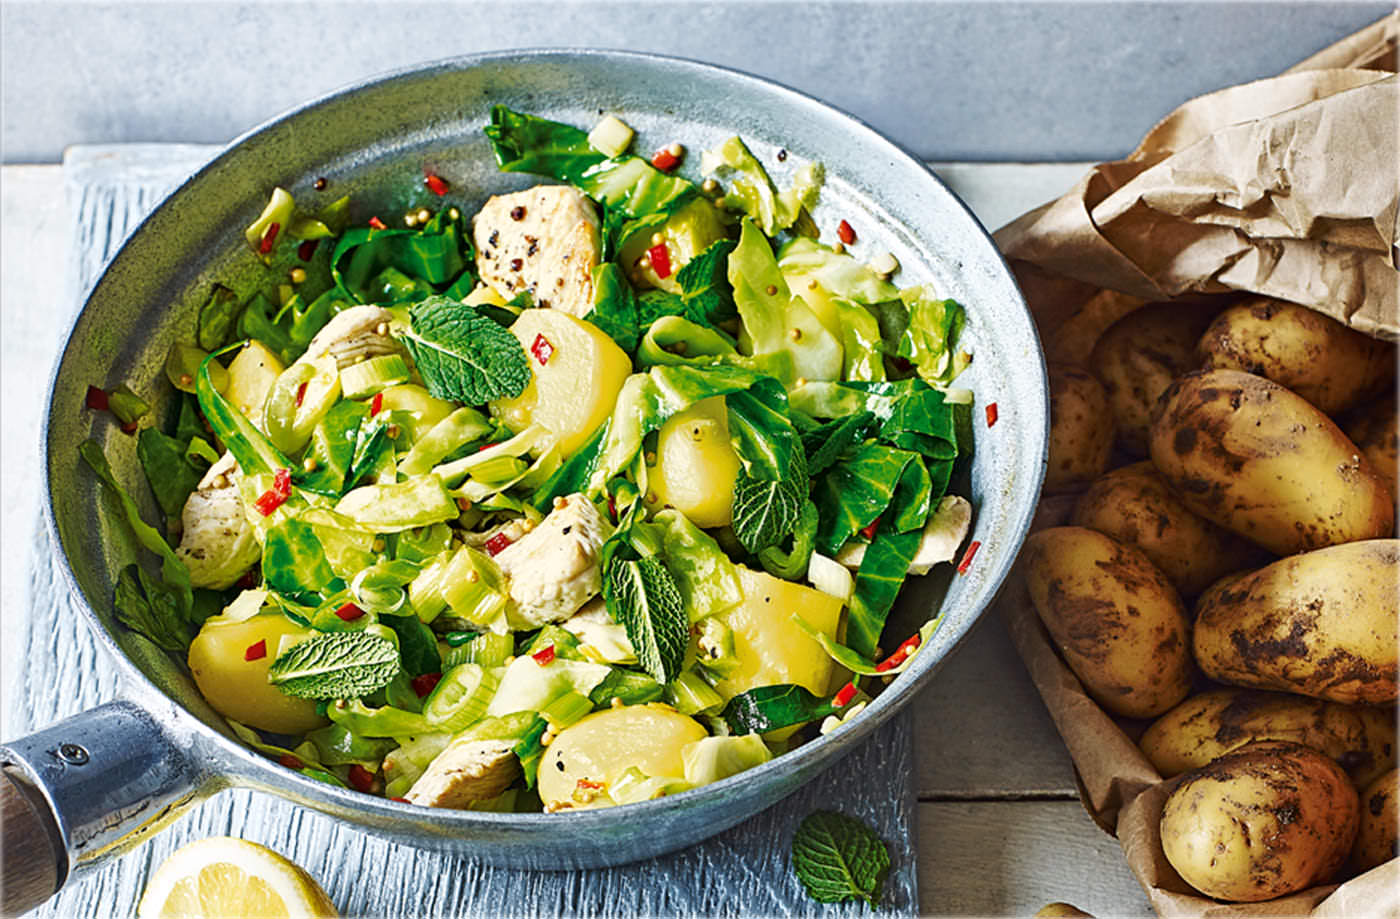 Spiced Jersey Royals and turkey stir-fry recipe